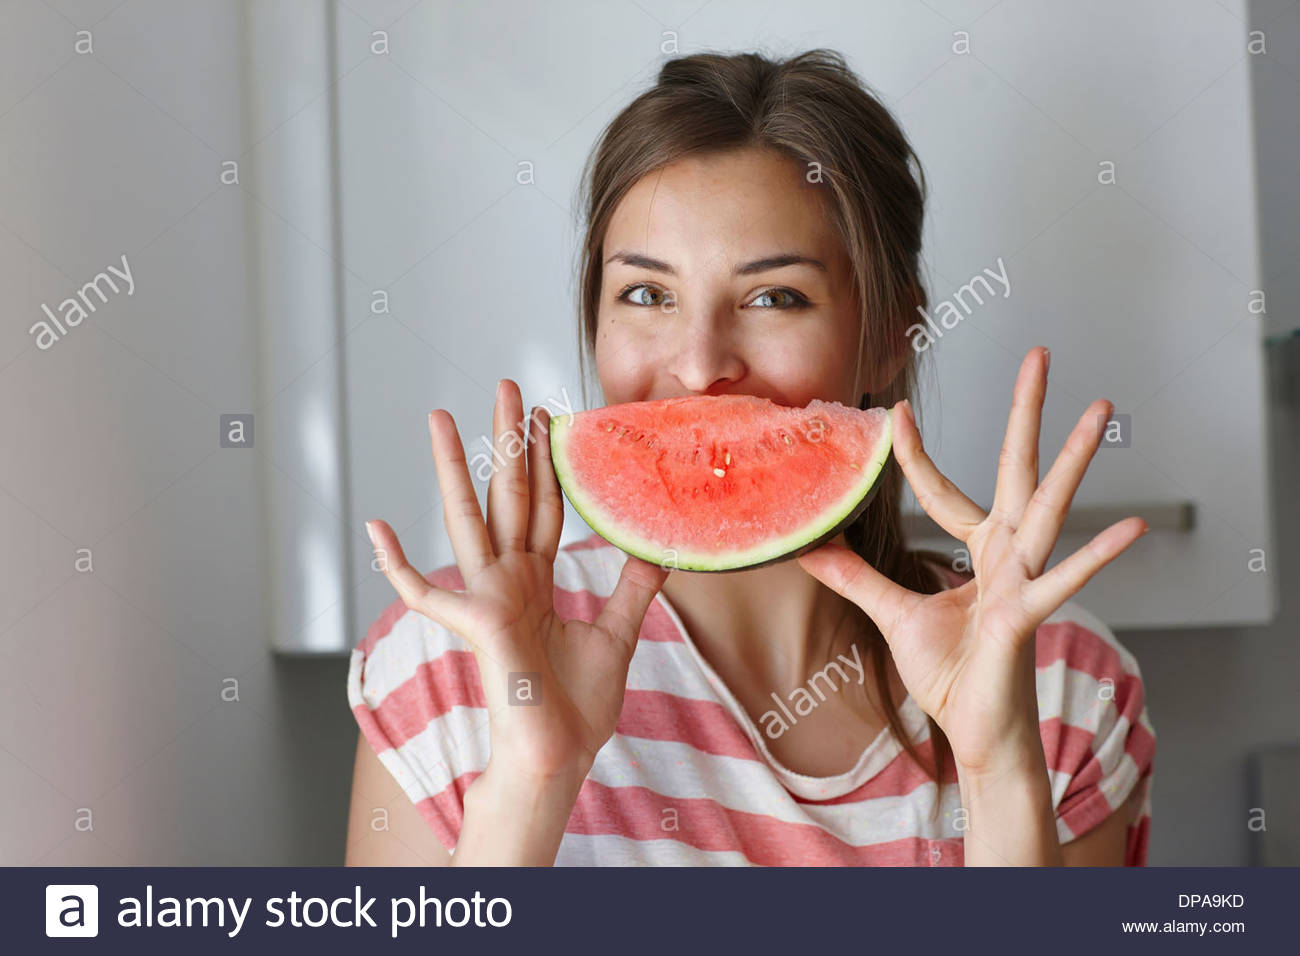 Woman covering mouth with slice of watermelon - Stock Image